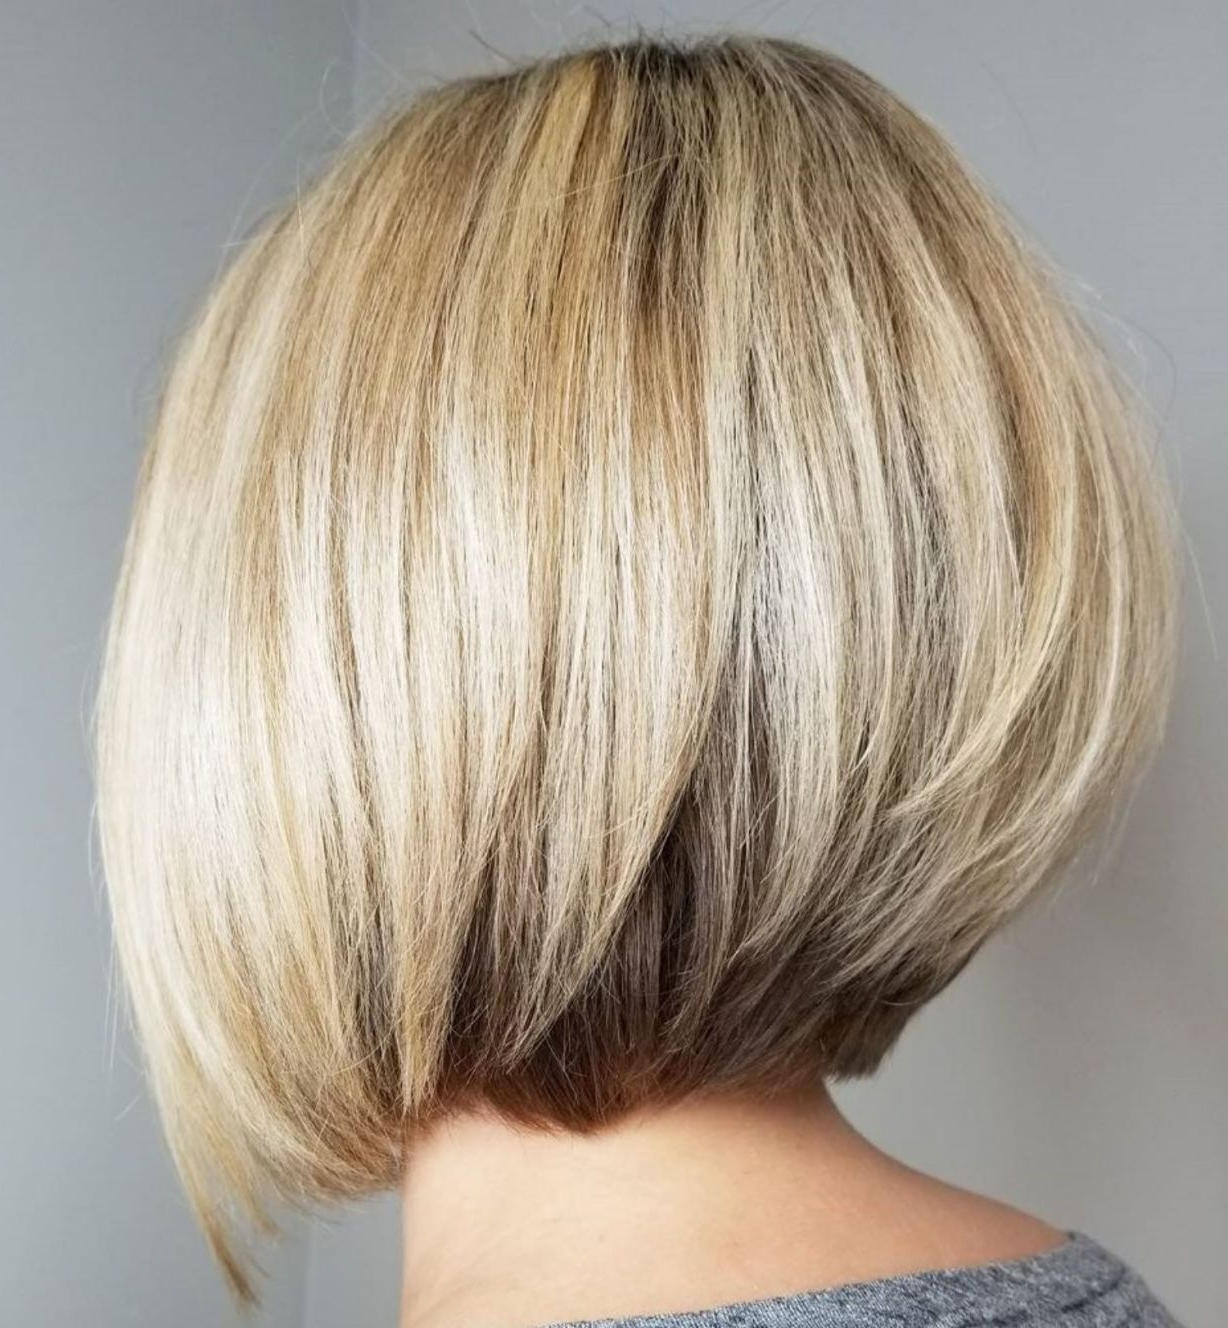 Current Layered And Textured Bob Hairstyles In 60 Layered Bob Styles: Modern Haircuts With Layers For Any (View 3 of 20)